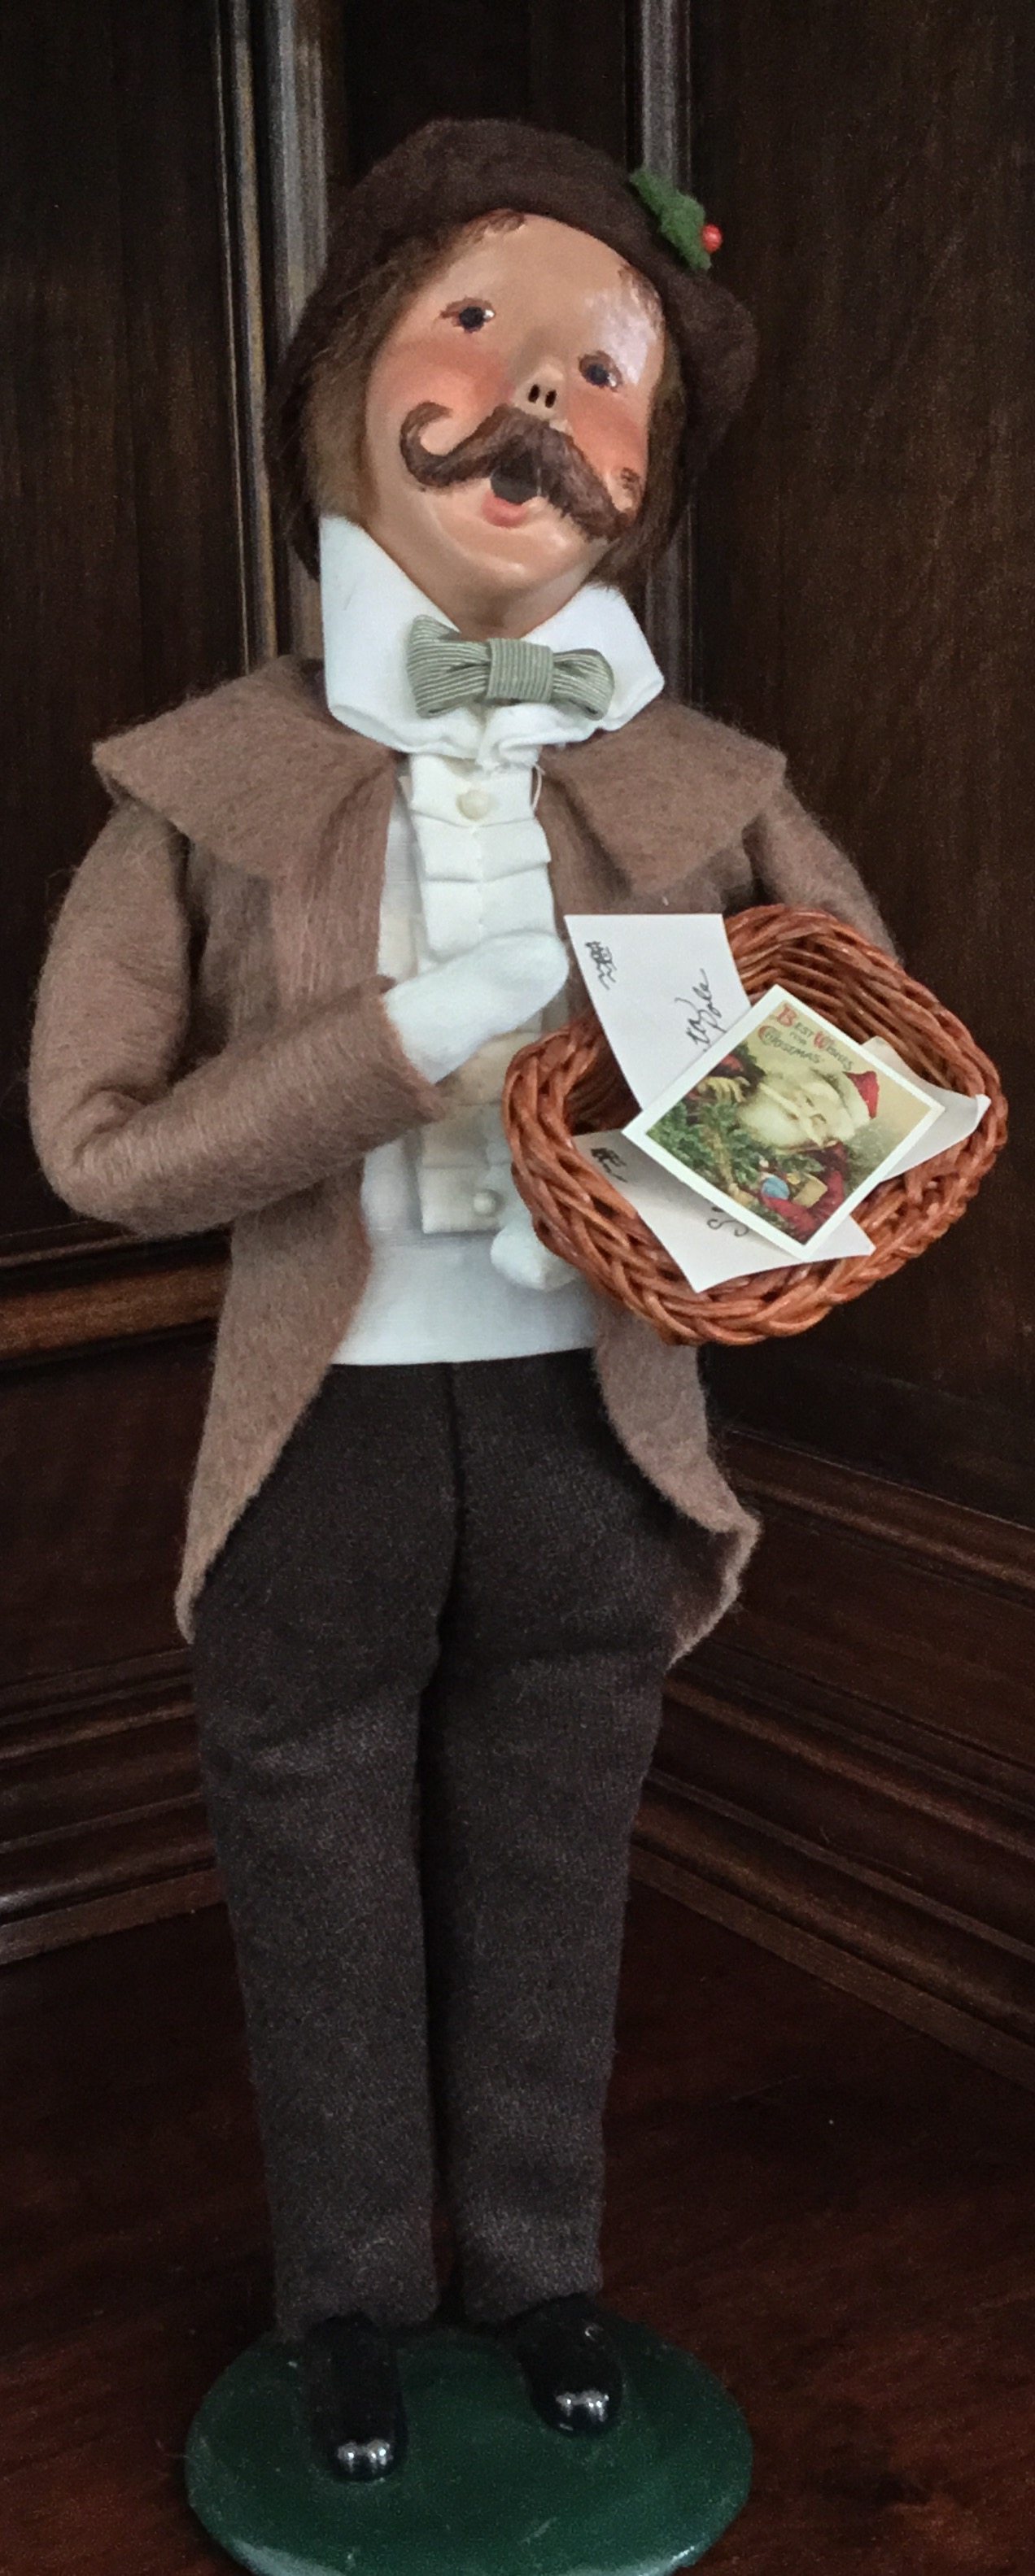 1997 Byers' Choice, Caroler with Cards